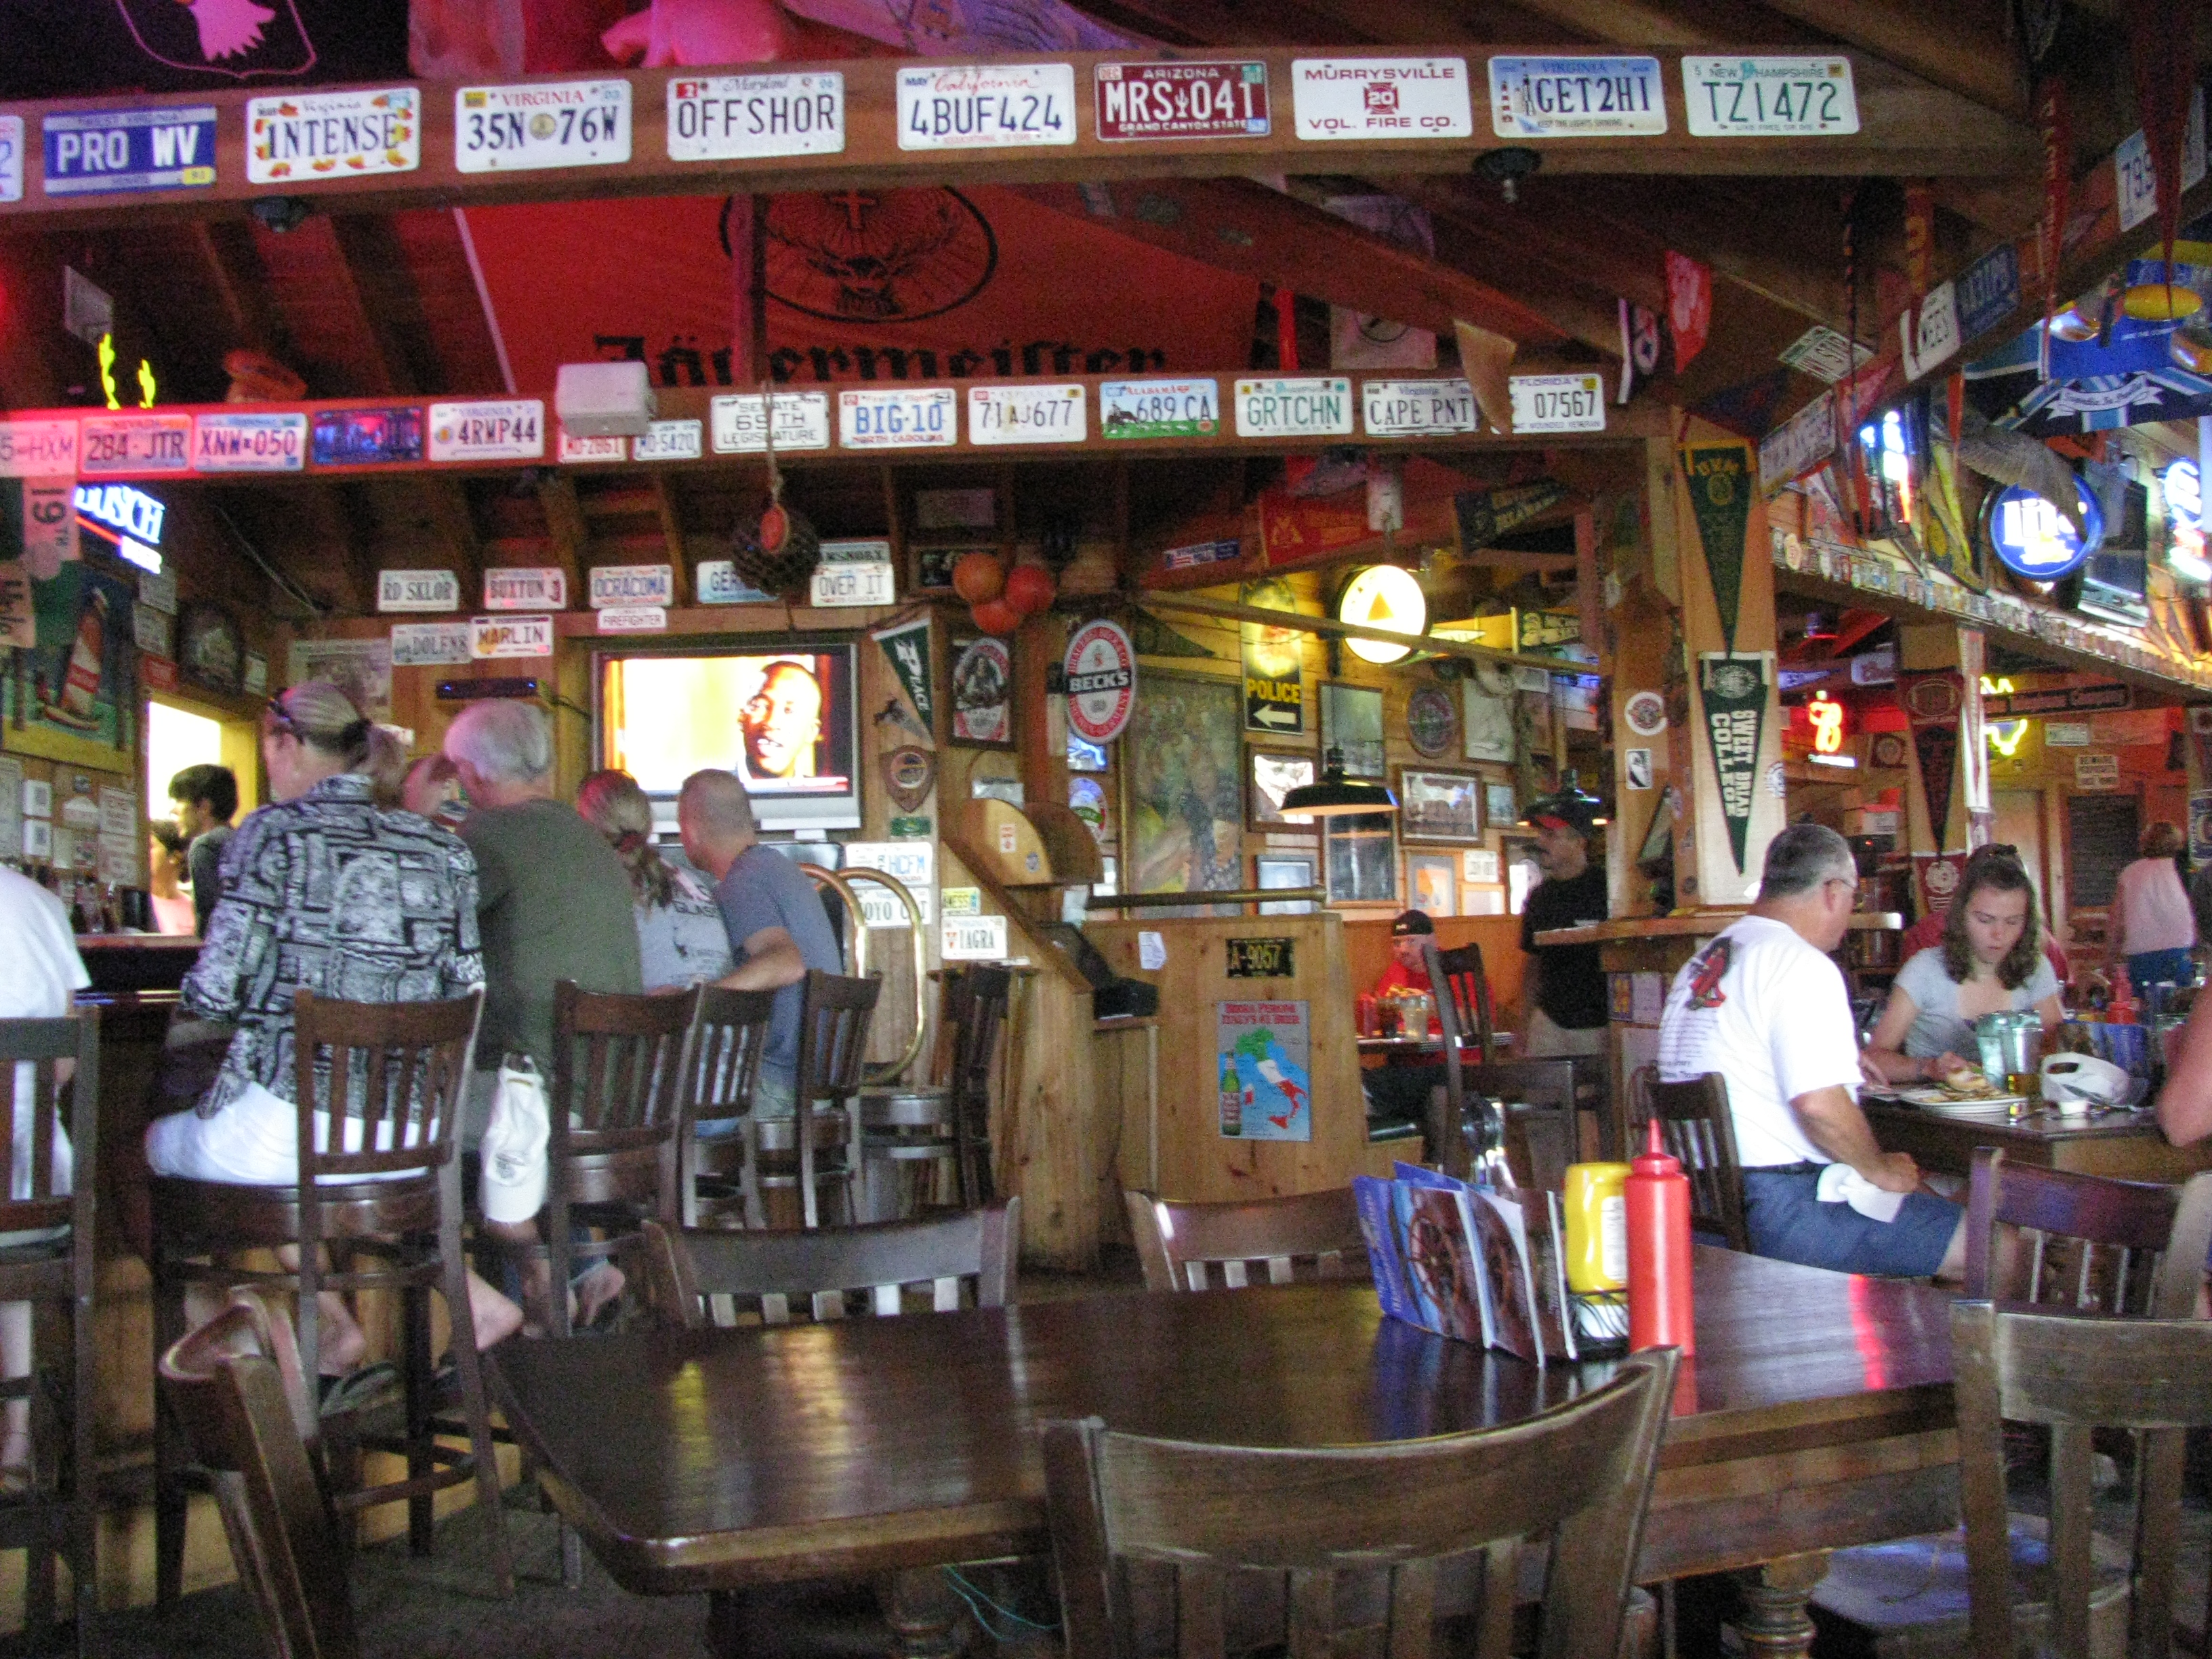 Filehowards Pub In Ocracoke Insidejpg Wikimedia Commons